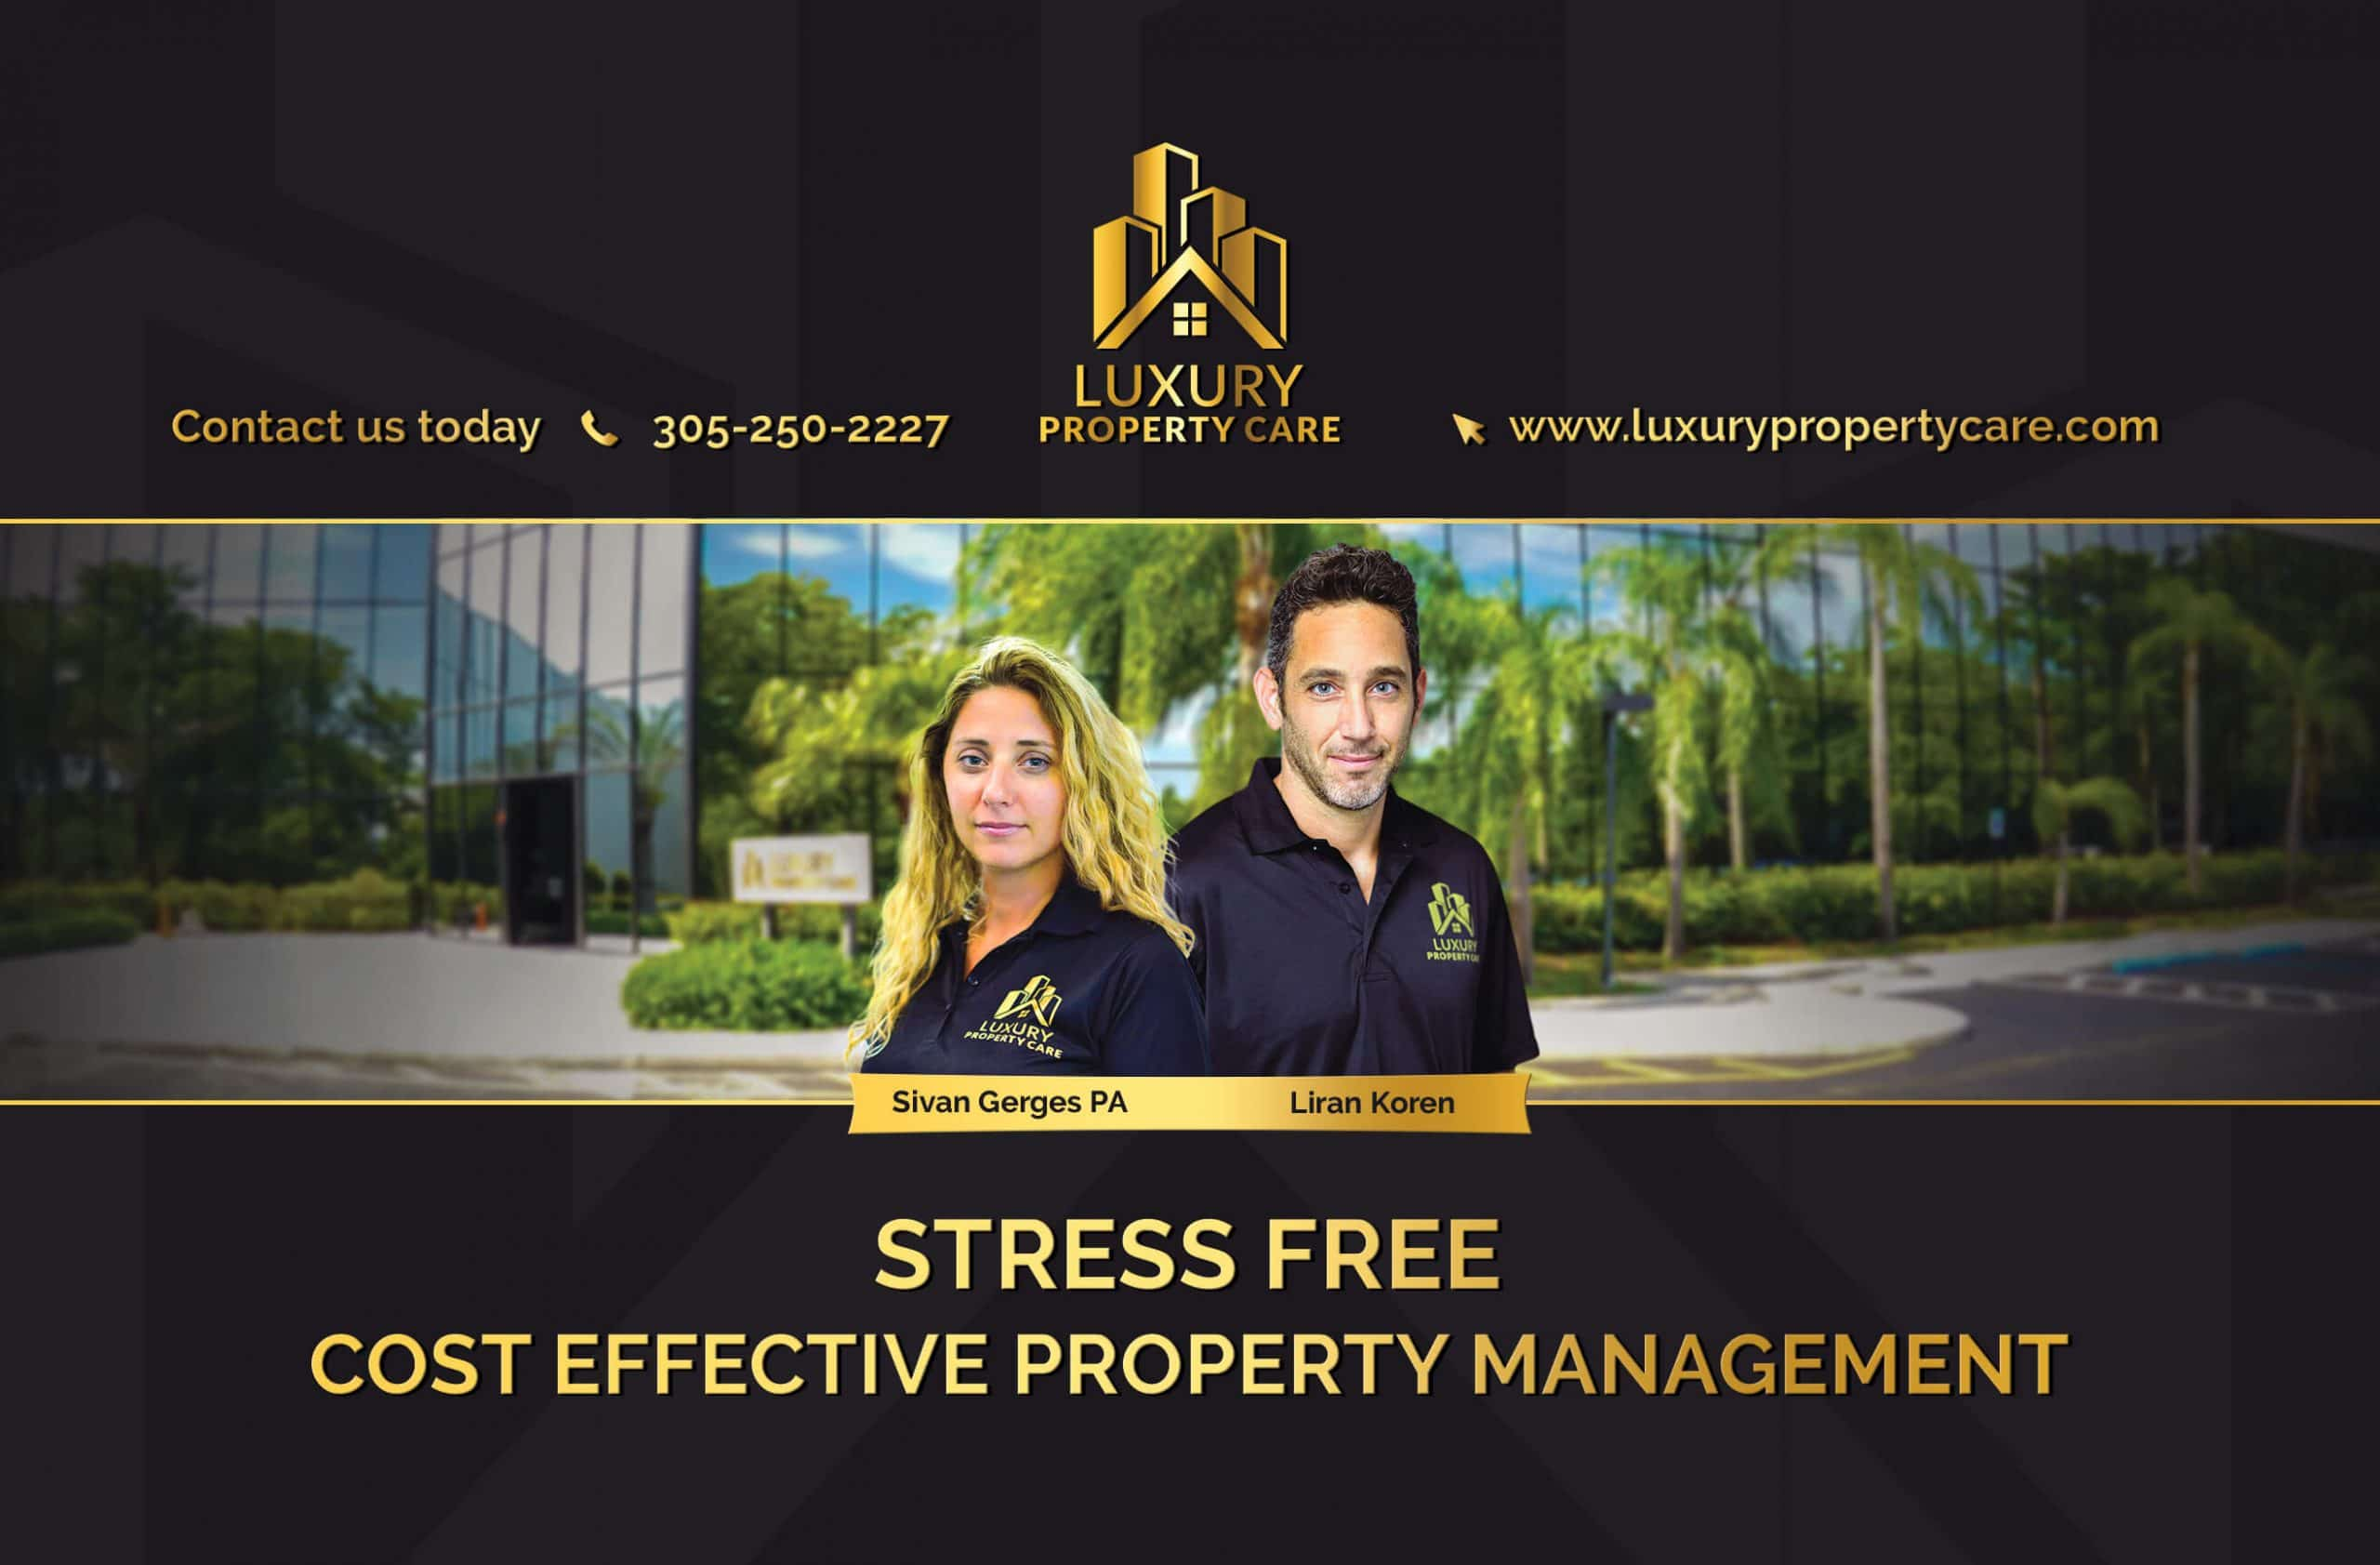 Luxury property care; Expert commercial property managers